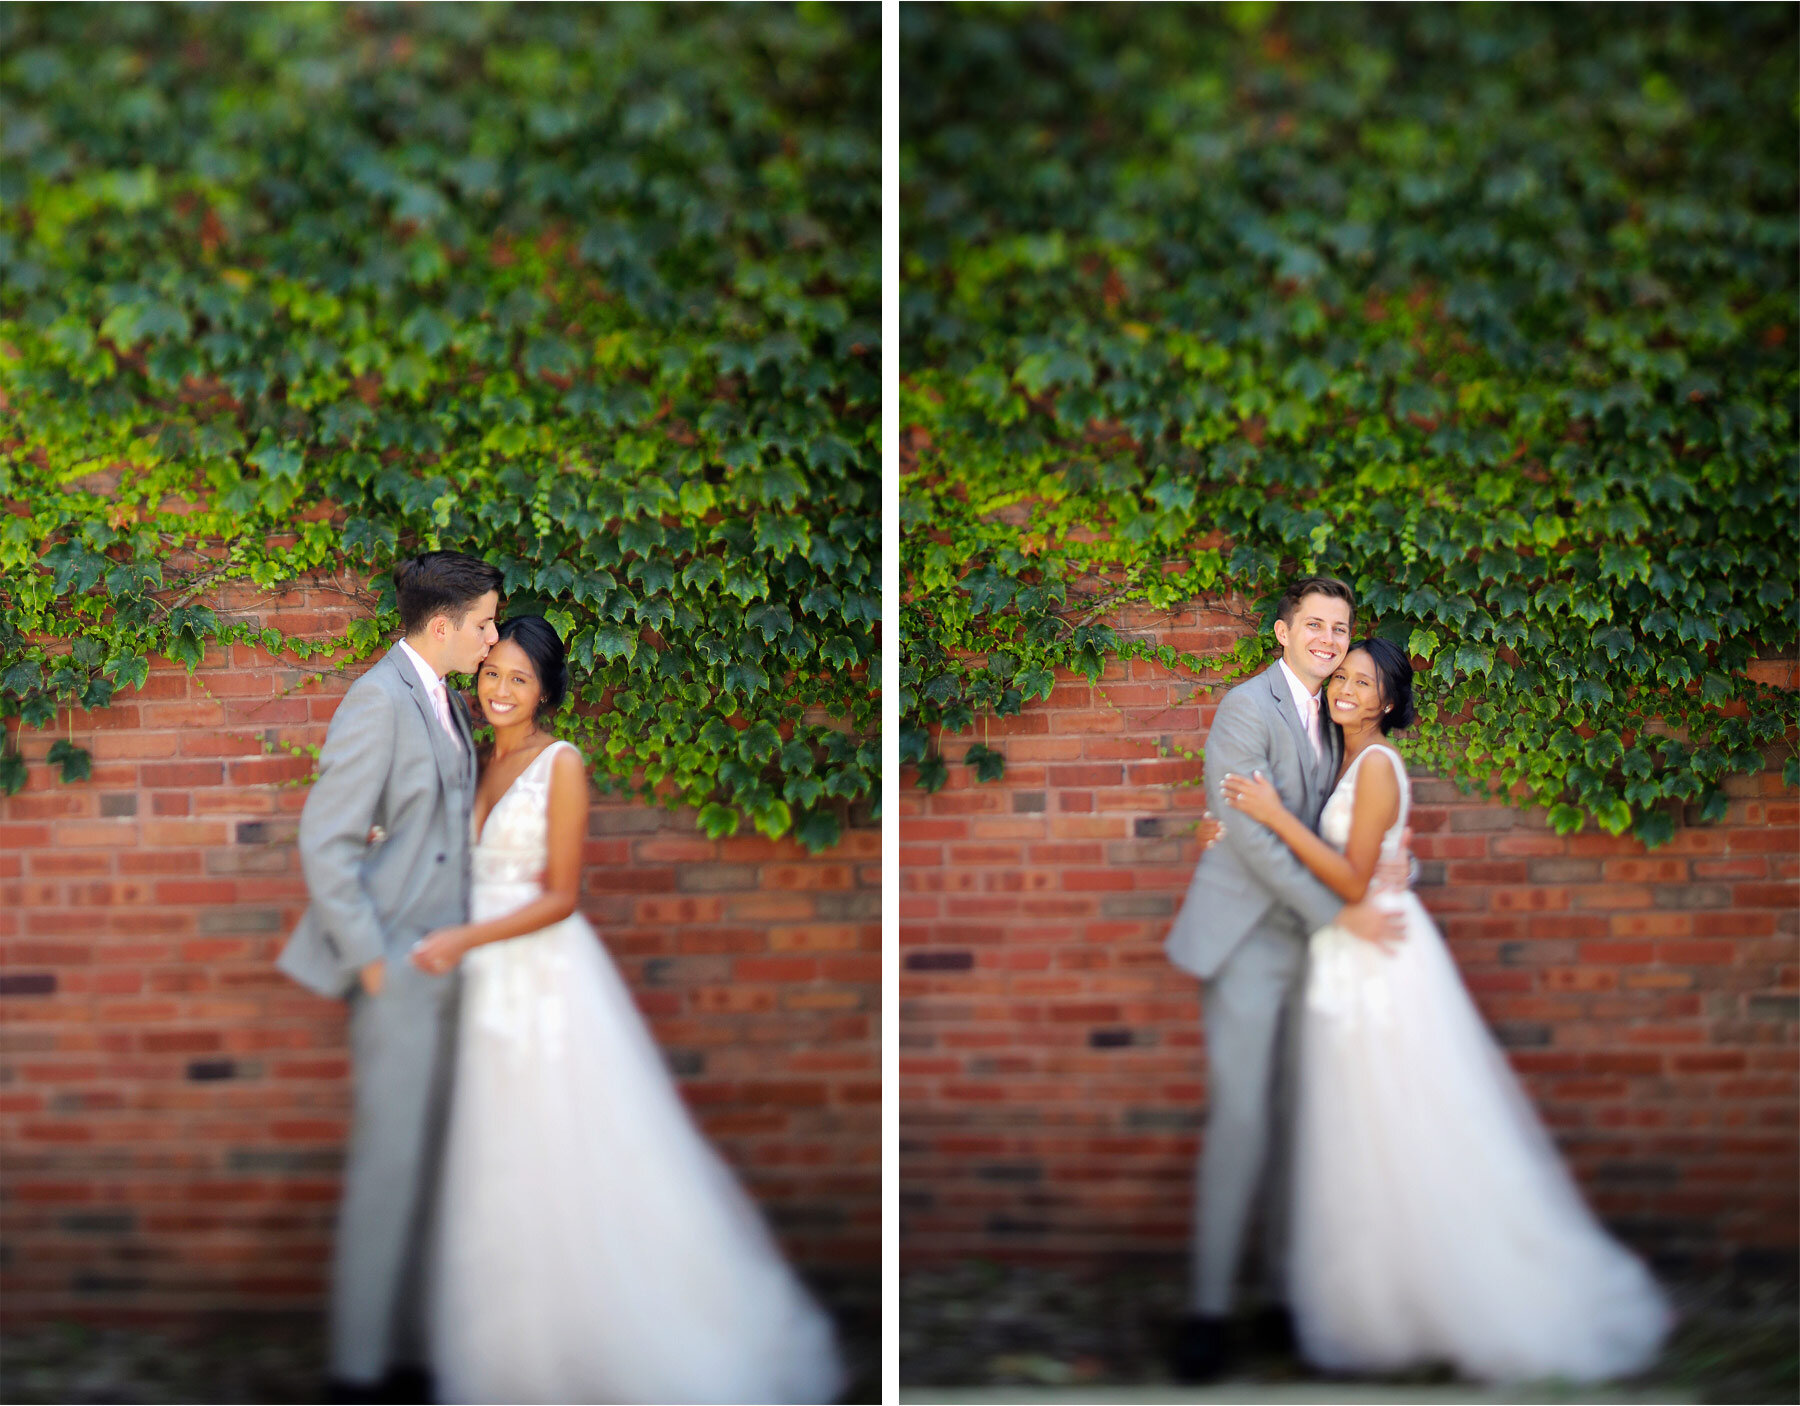 05-Wedding-by-Andrew-Vick-Photography-Chicago-Illinois-Bride-Groom-Brownstone-Ivy-Ashley-and-Nicholas.jpg